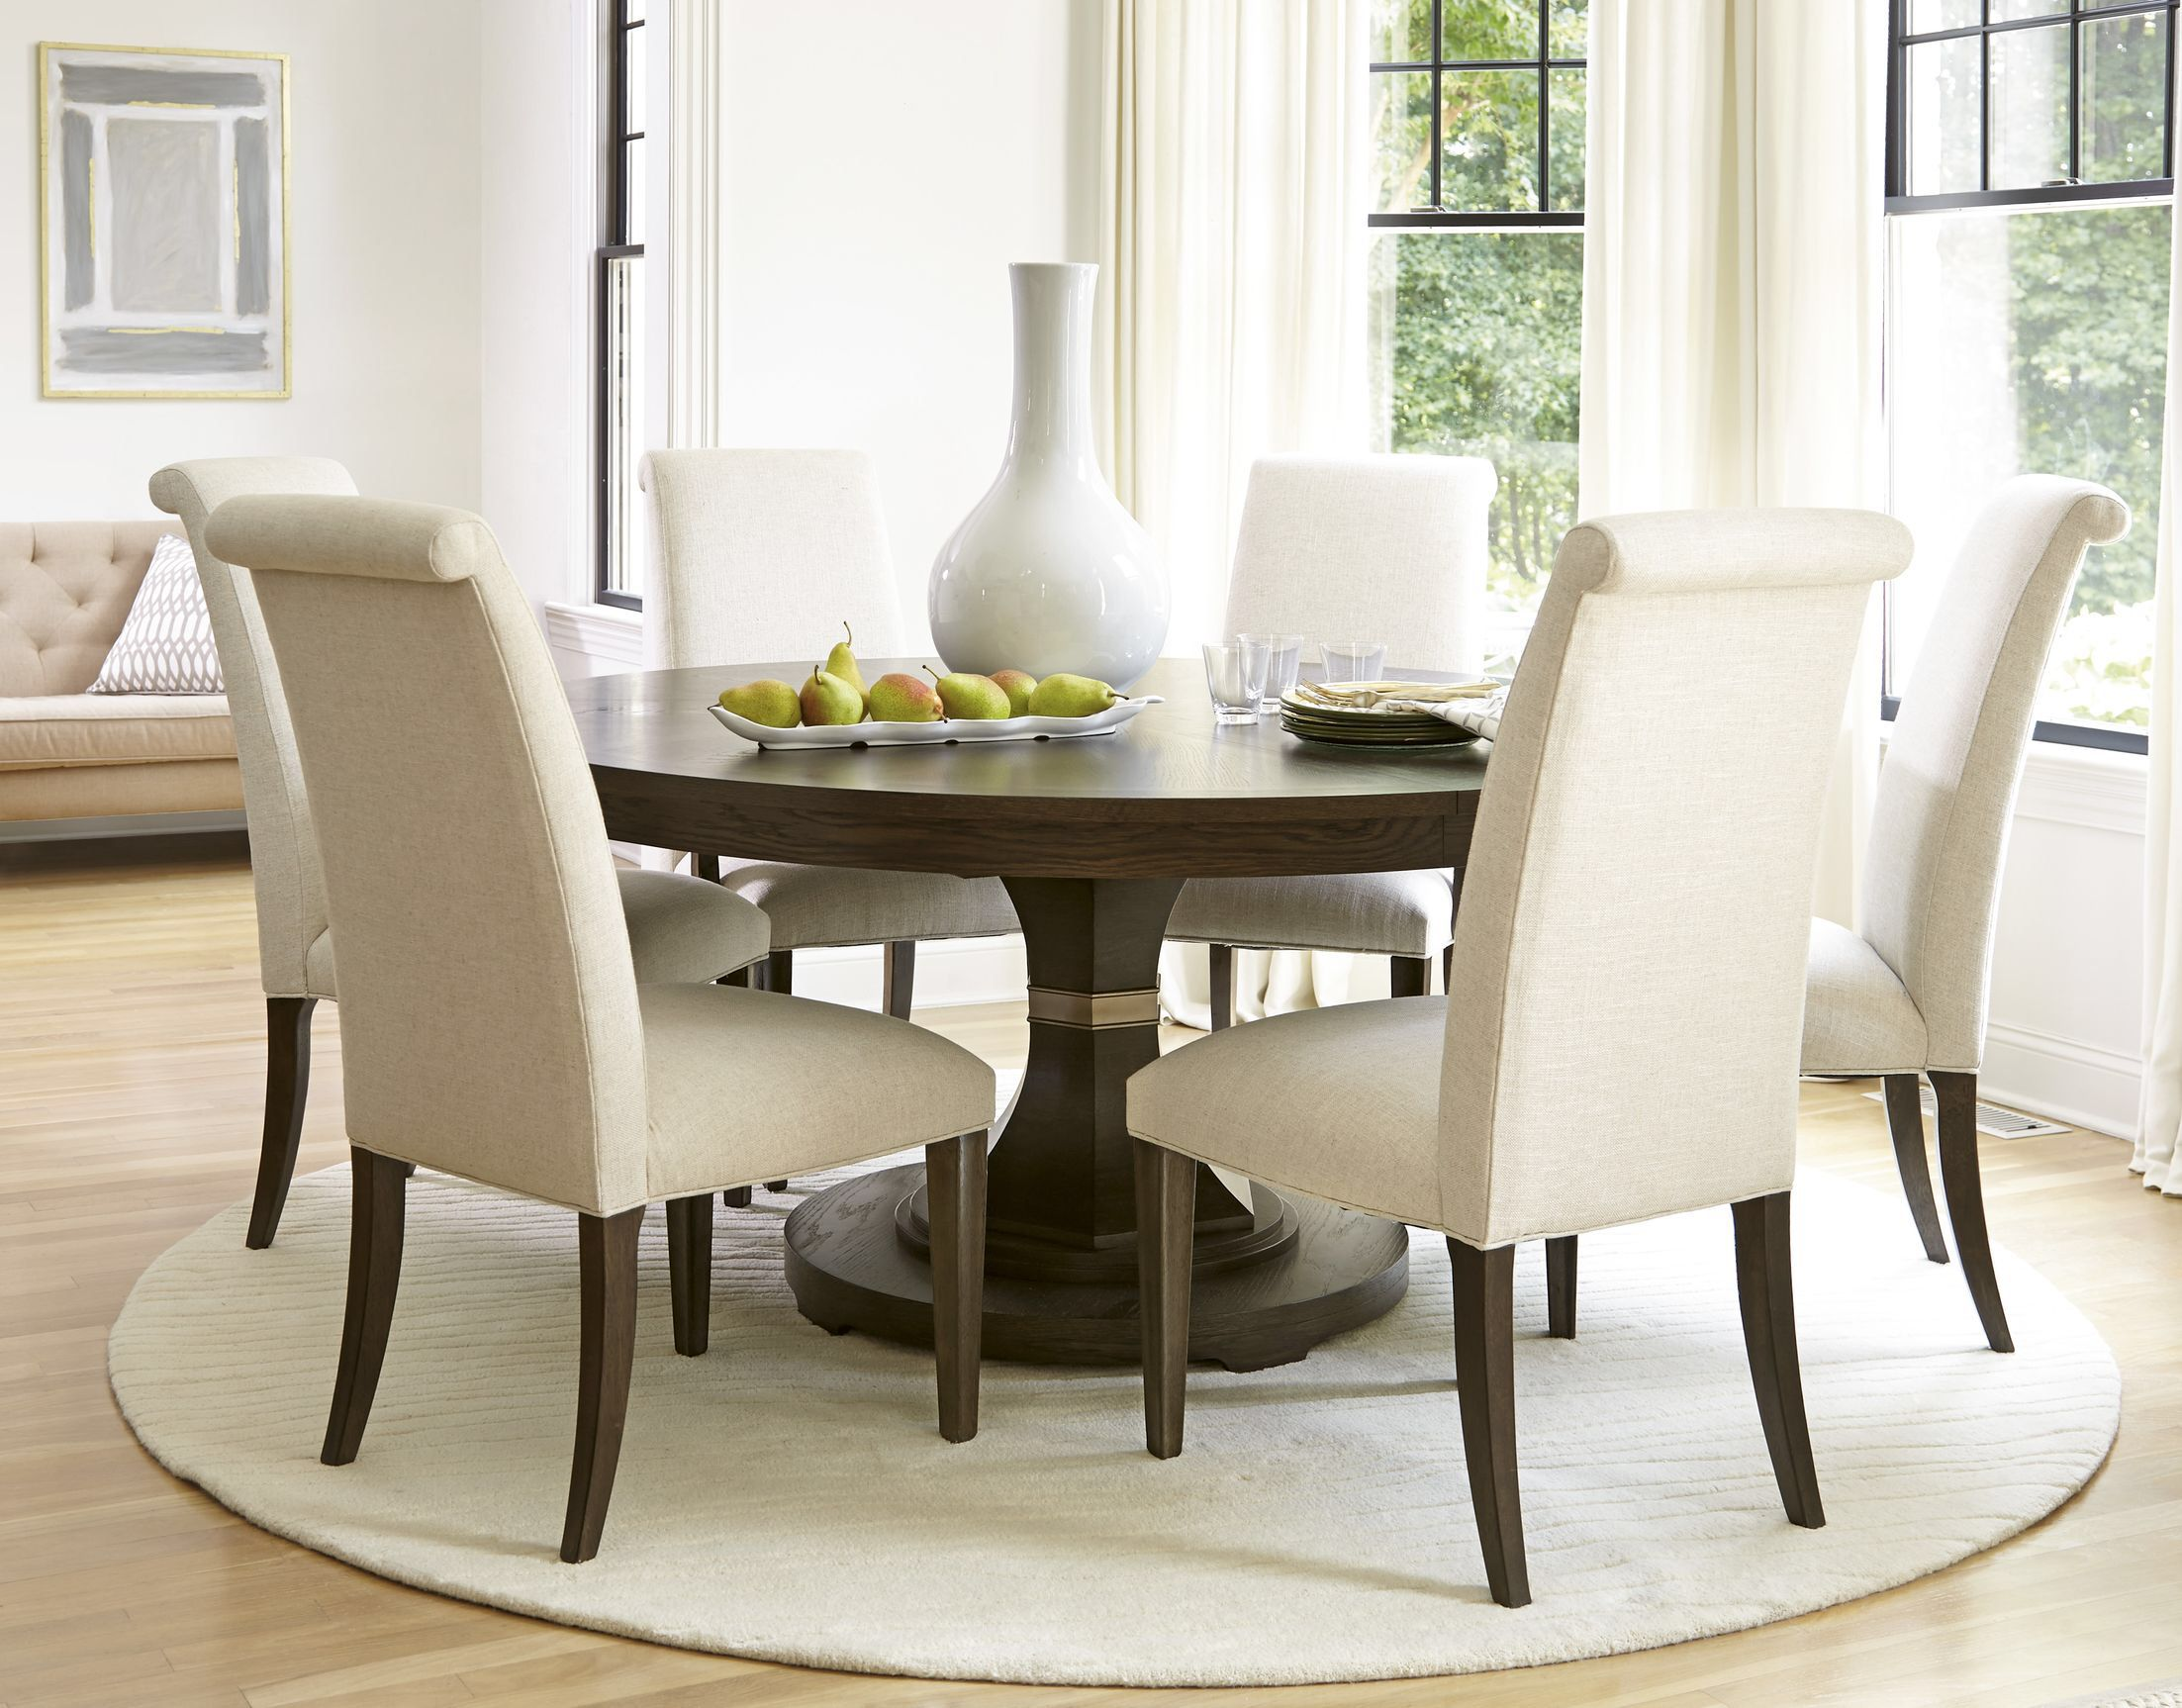 California Extendable 7 Piece Dining Set Round Table Sets